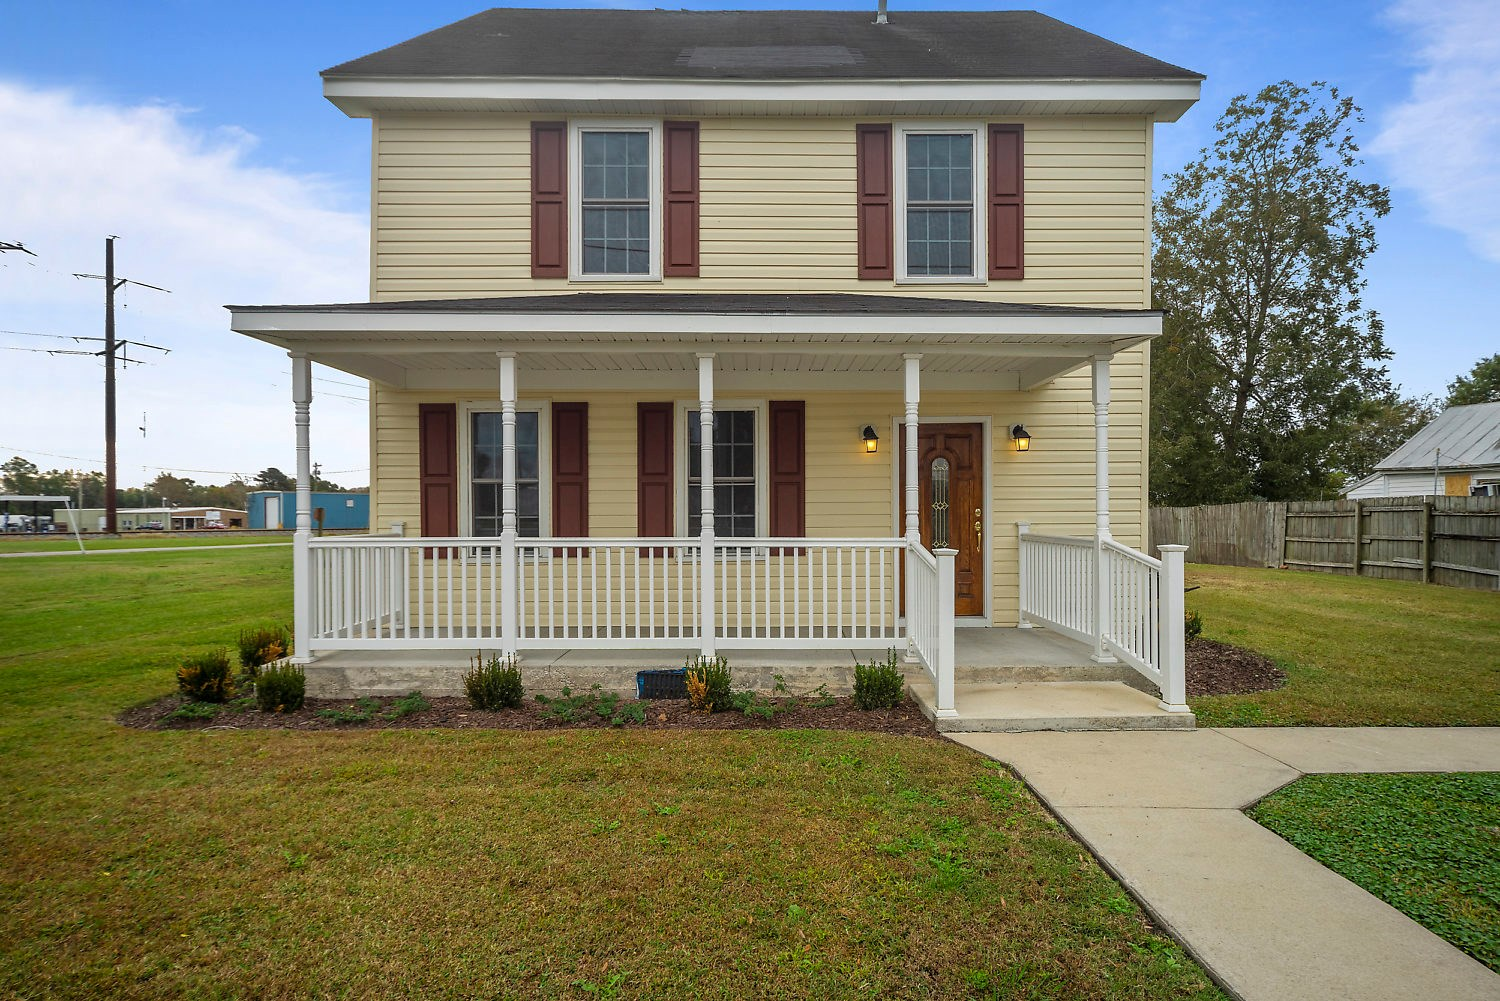 3 Bedroom, 2 Bath home in Winfall, NC